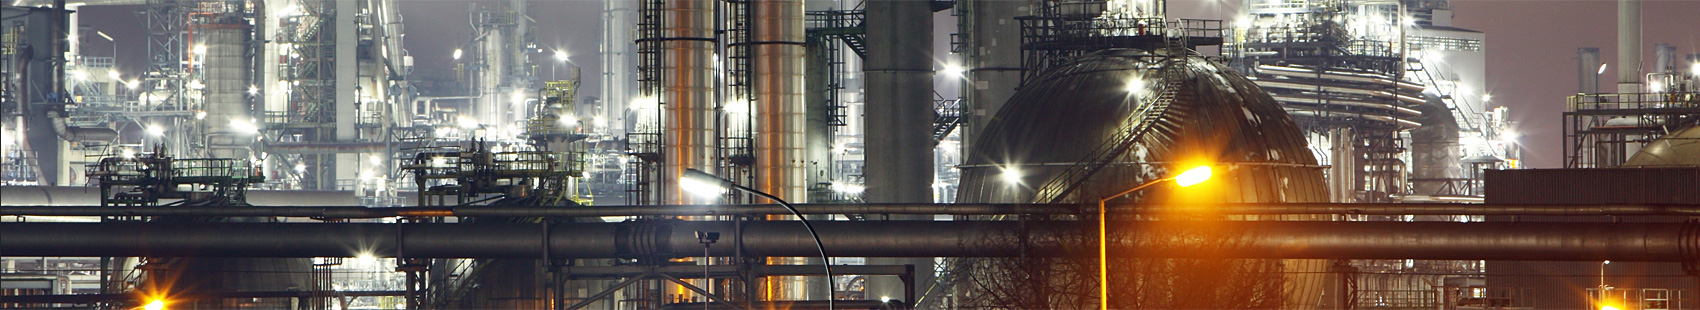 Extending the Profitability of Refineries/Petrochemicals Operations